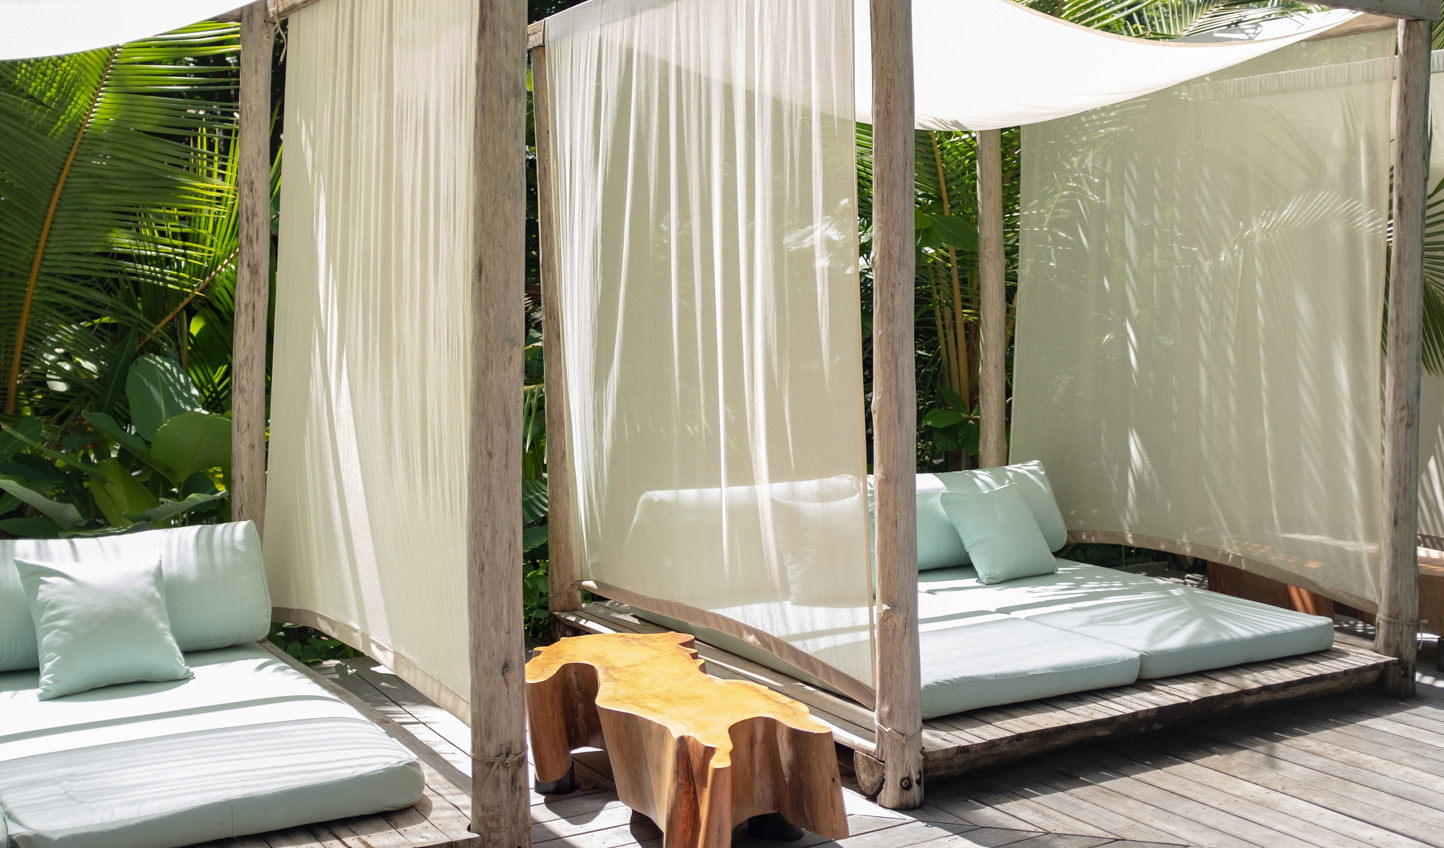 Switch off from the world in the luxury cabanas and day beds